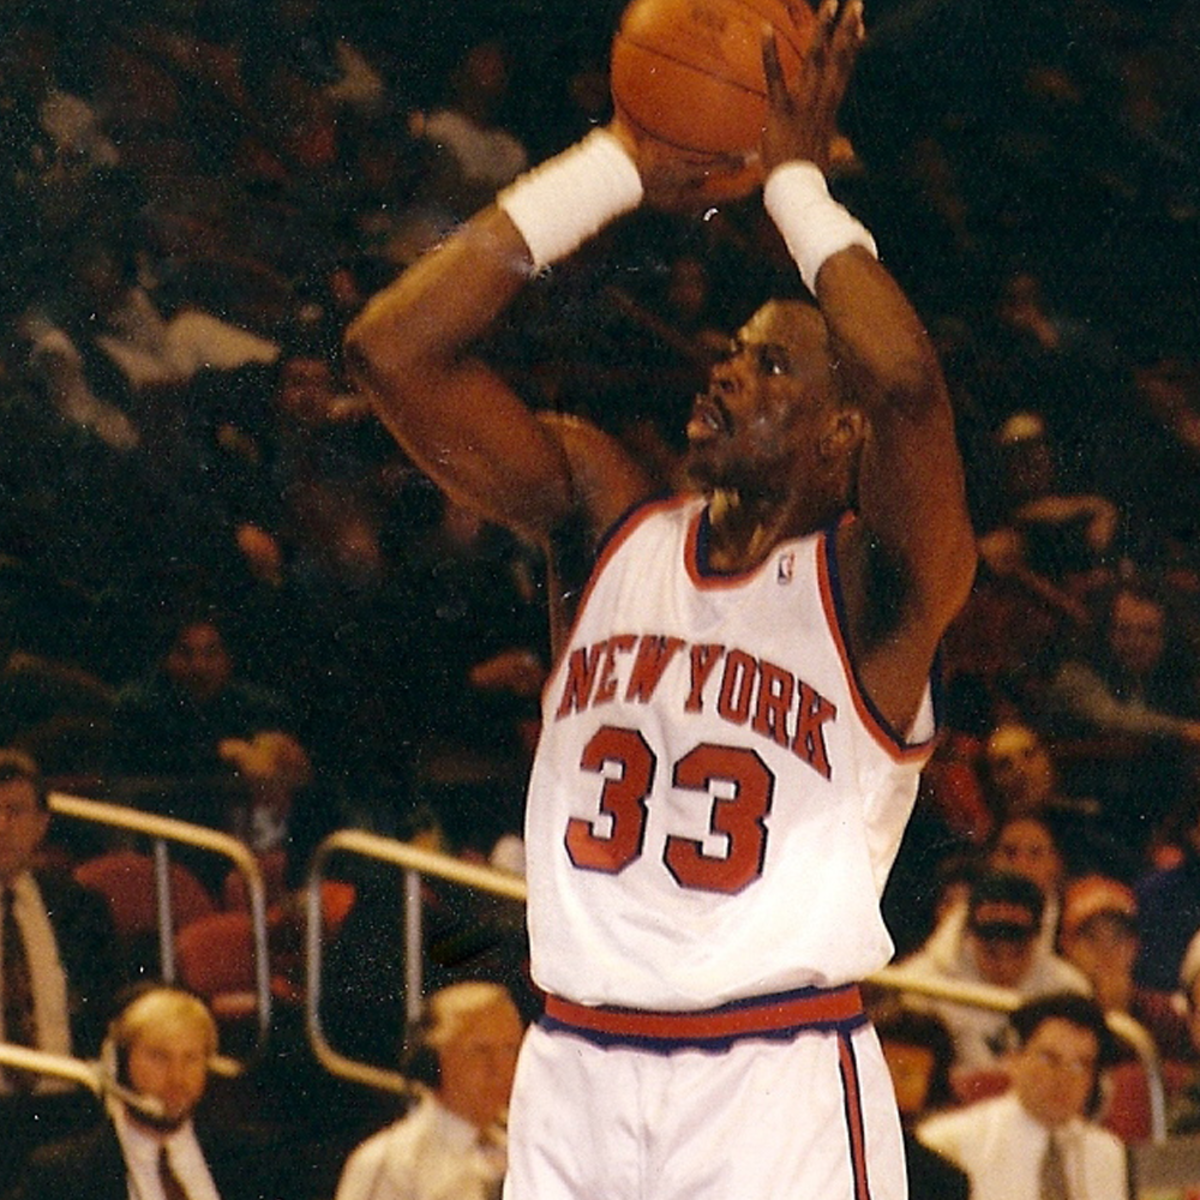 Patrick Ewing shooting a free-throw.